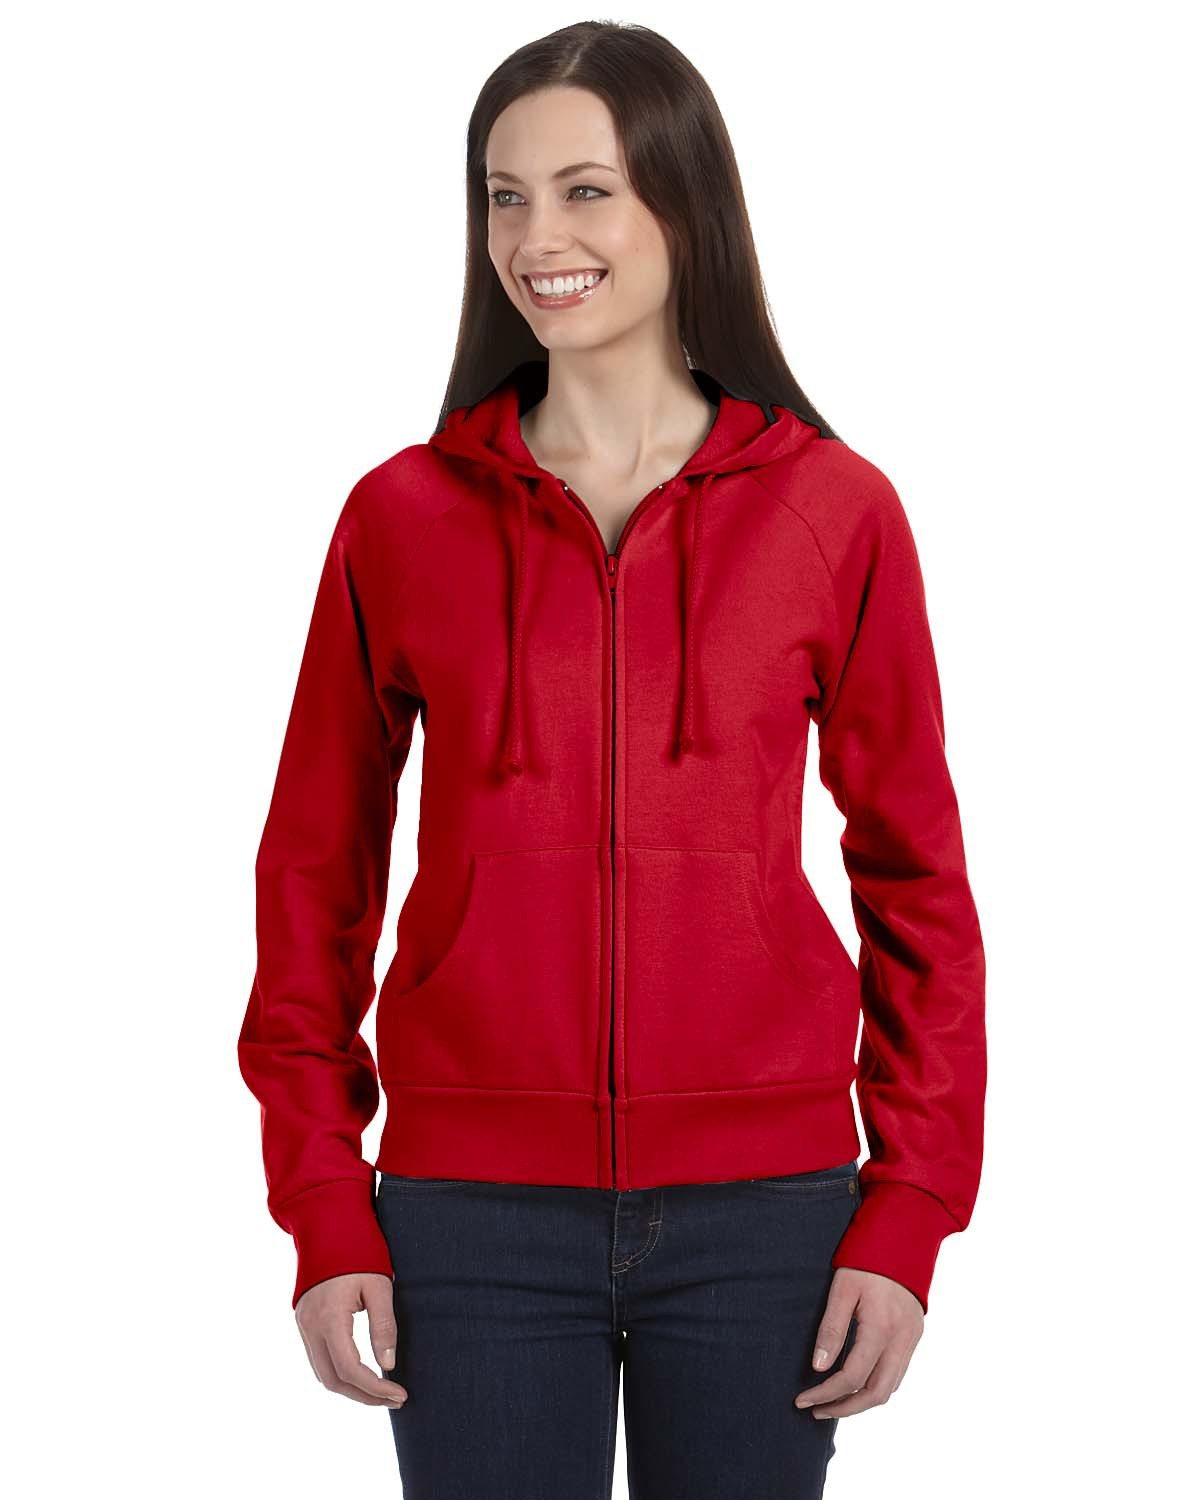 bella 7007 Ladies' Raglan Full-Zip Hooded Sweatshirt